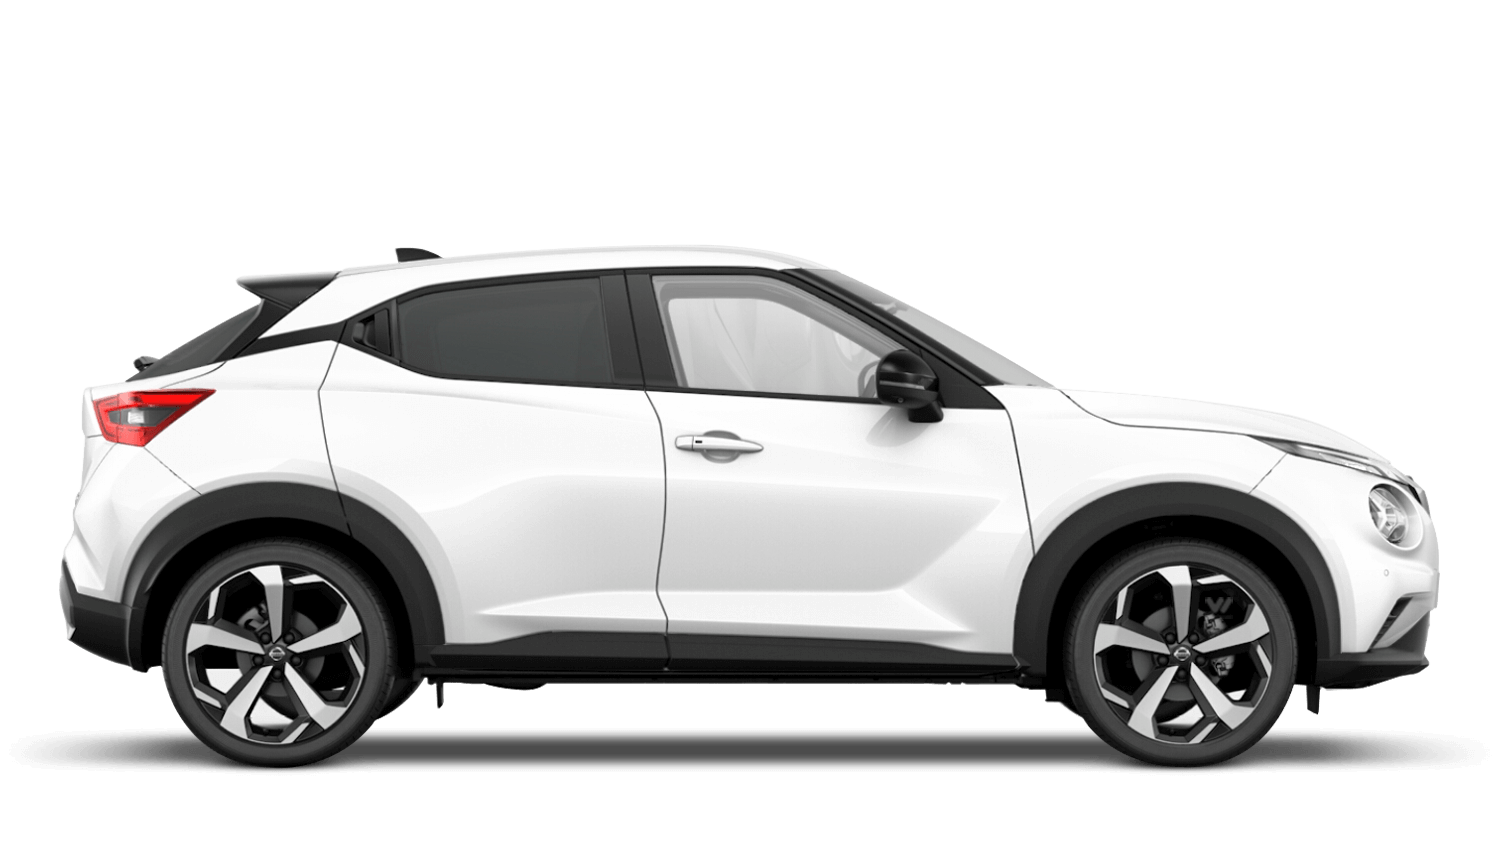 Arctic White Next Generation Nissan Juke